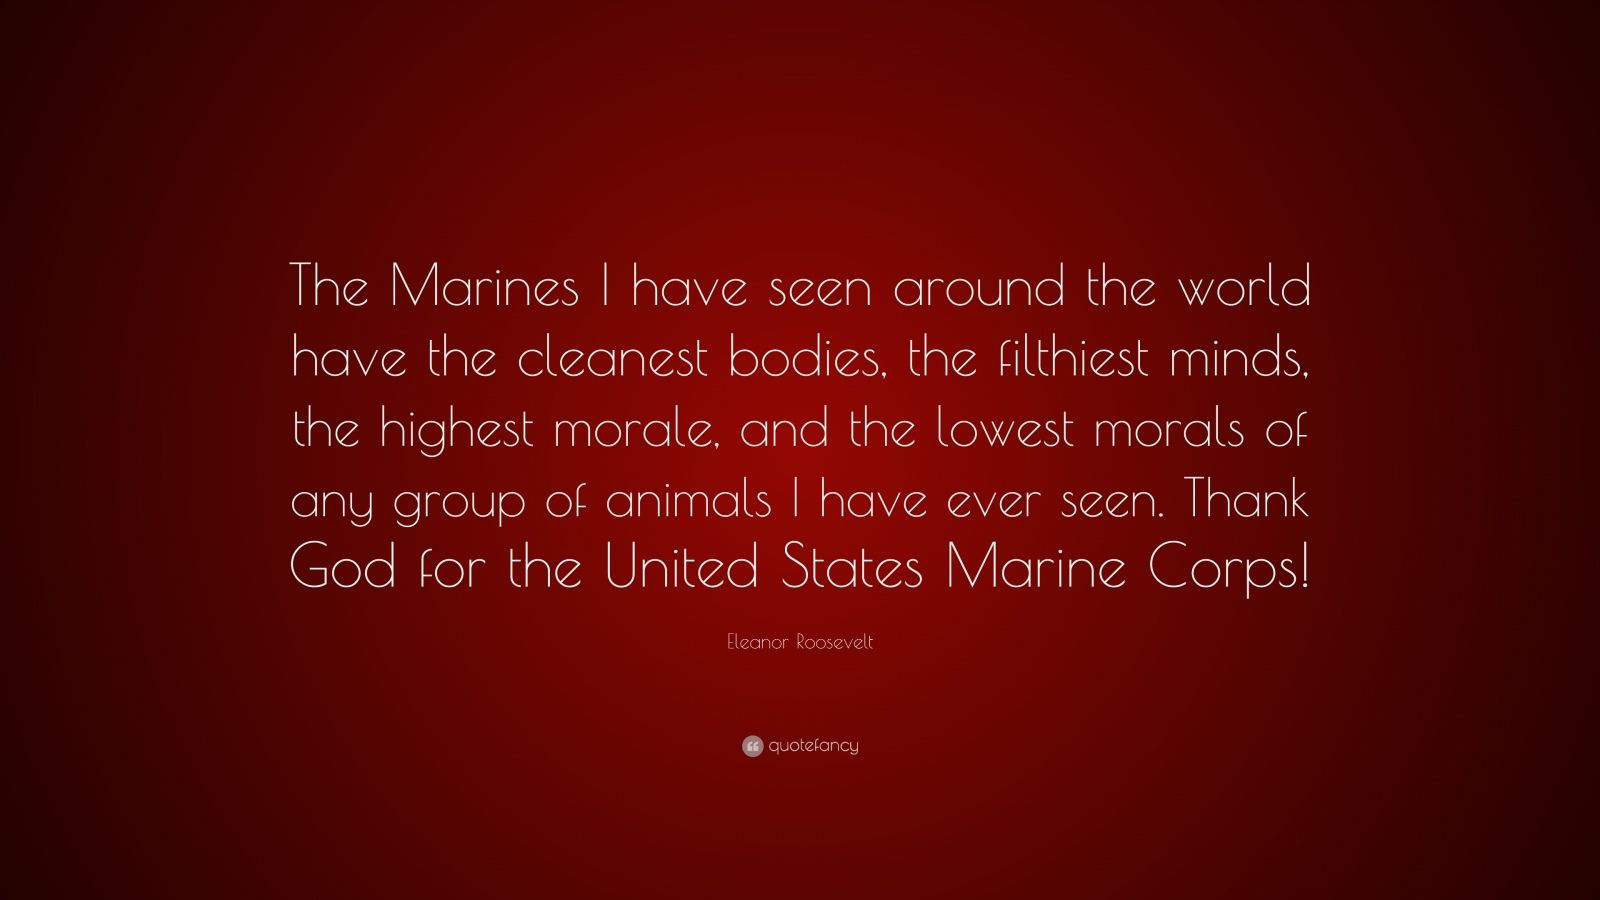 Eleanor Roosevelt Quote About Marines Stunning Eleanor Roosevelt Quotes 100 Wallpapers  Quotefancy